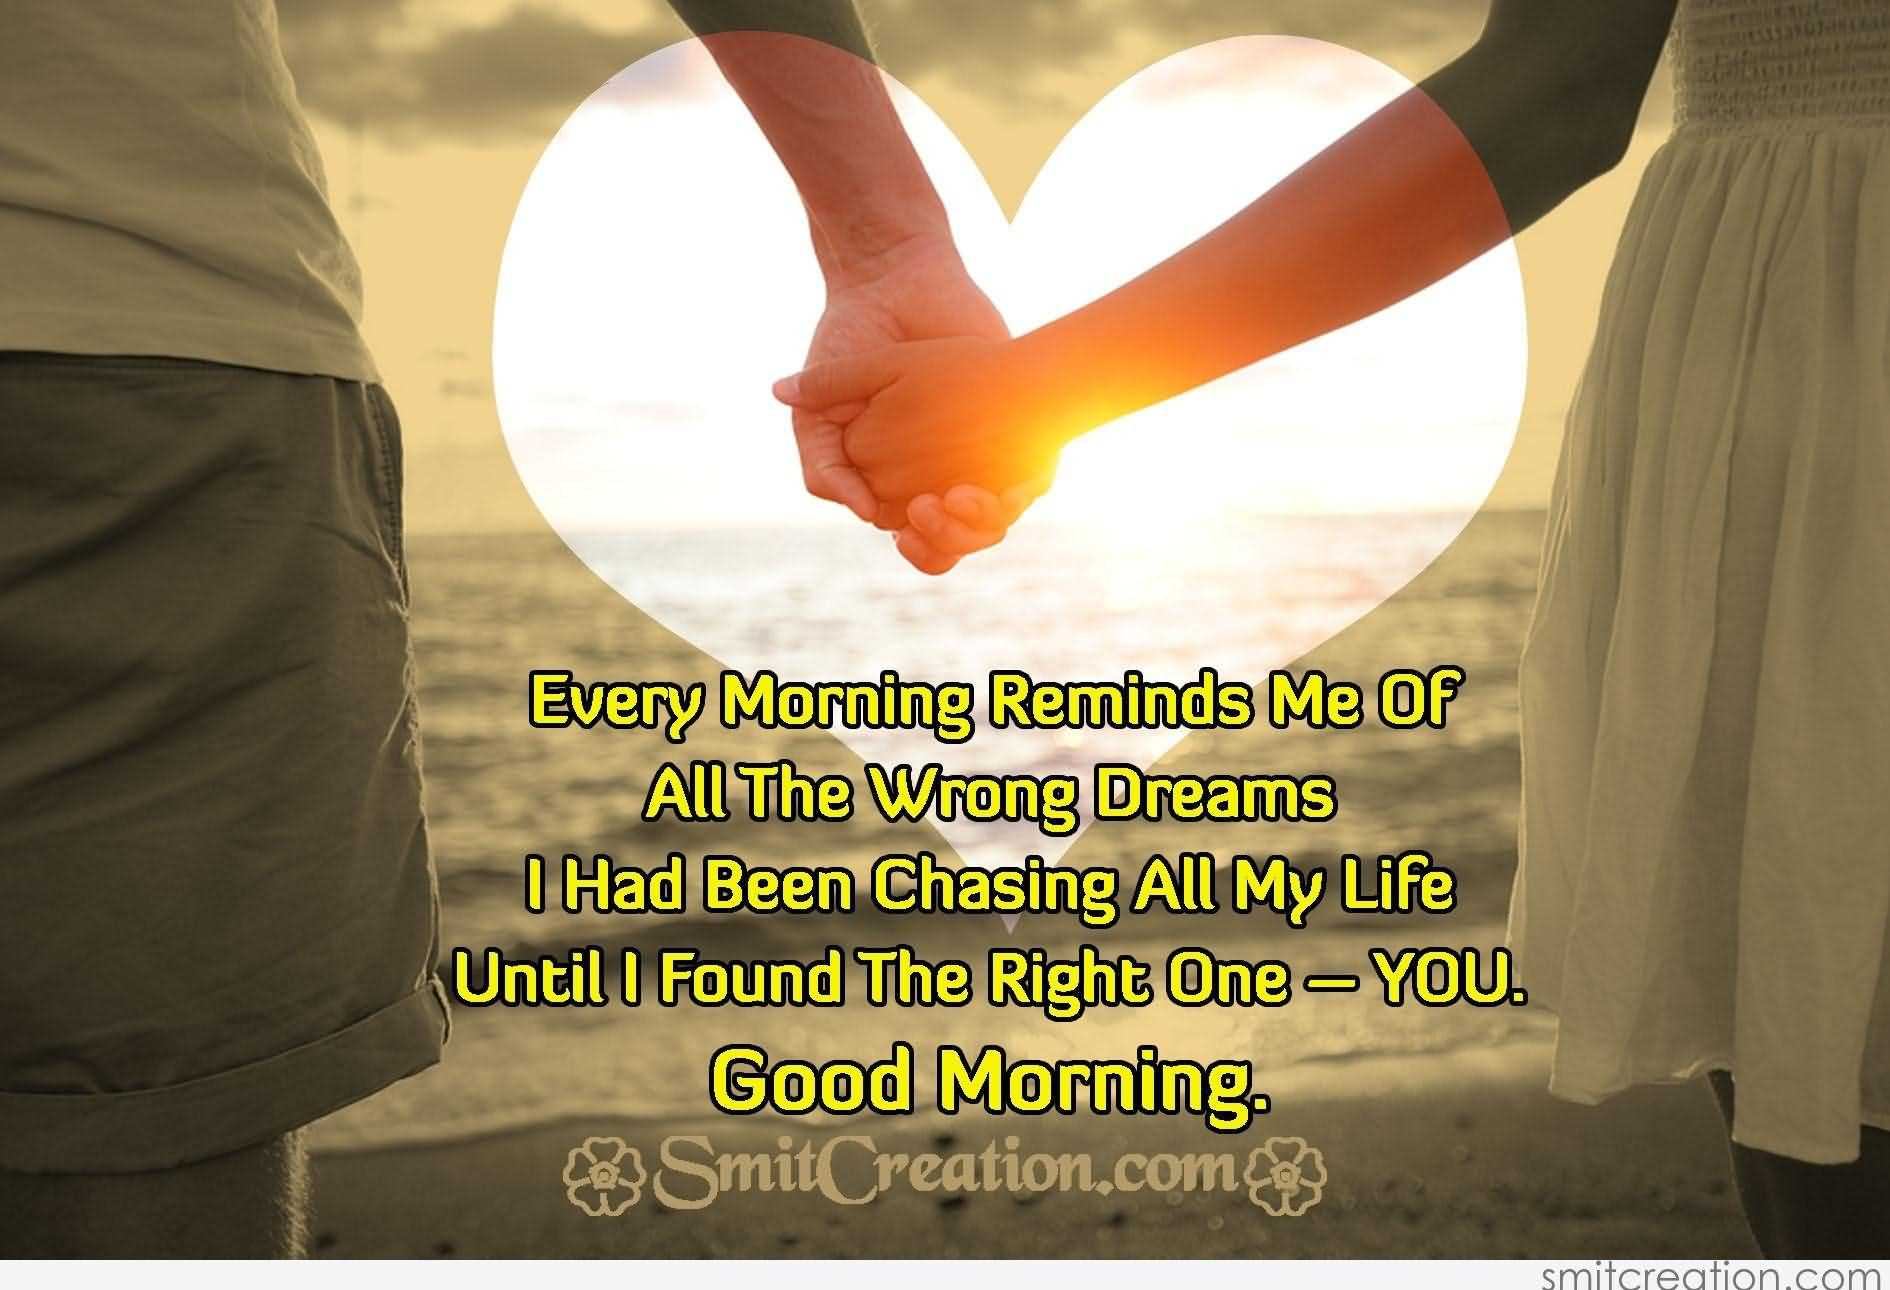 Good Morning Wishes For Girlfriend Image